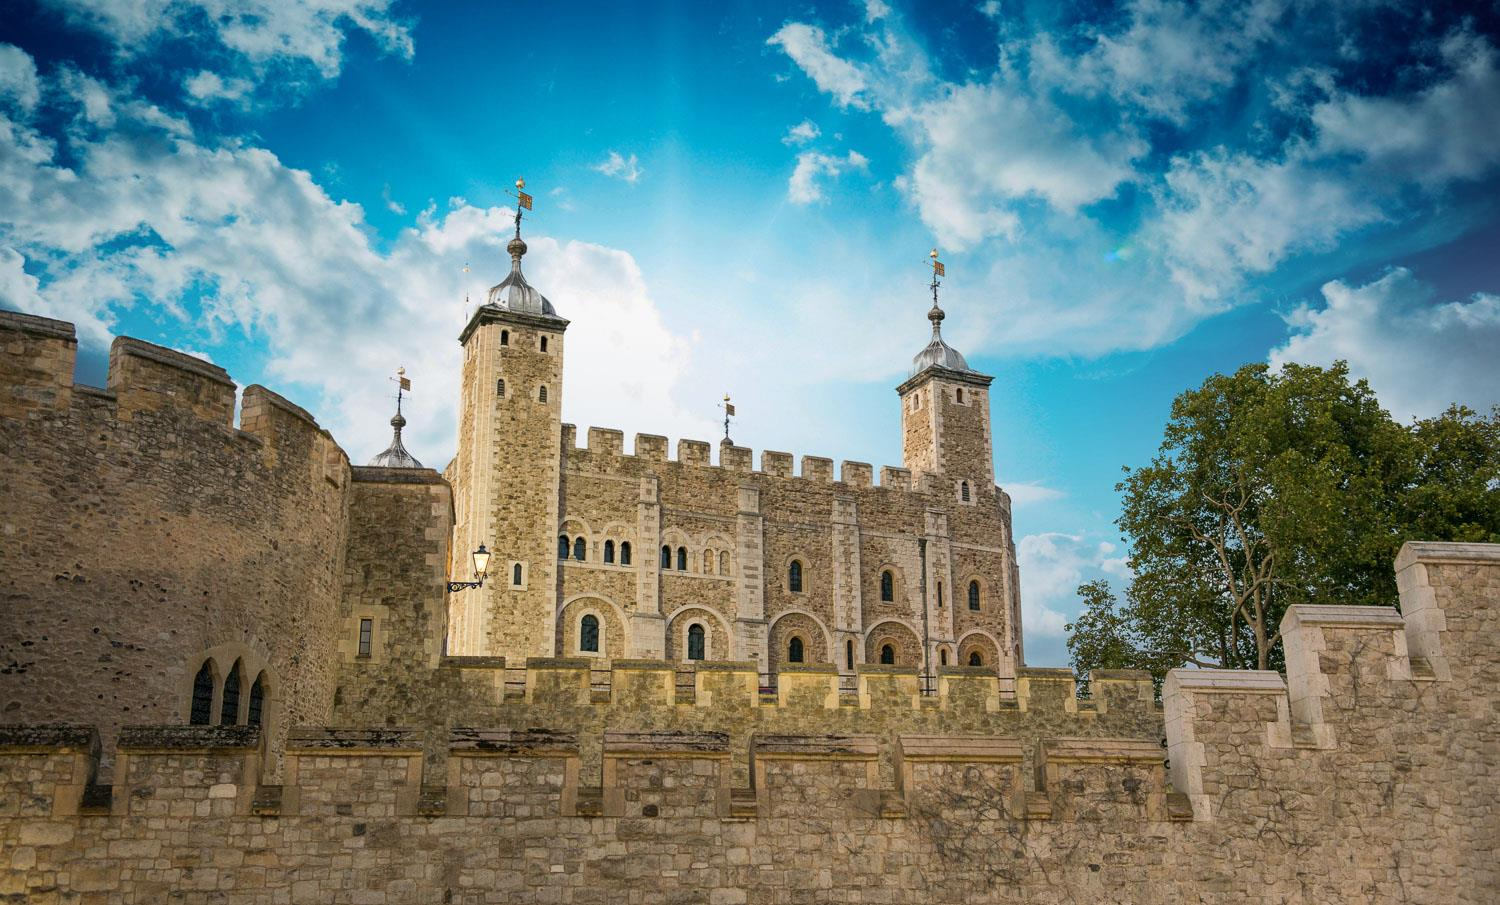 The Tower of London actually has 22 towers. There are two curtain walls, an outer and an inner bailey. You will hear spine-chilling ghost stories, about daring escapes and the day to day life of the famous Beefeaters.